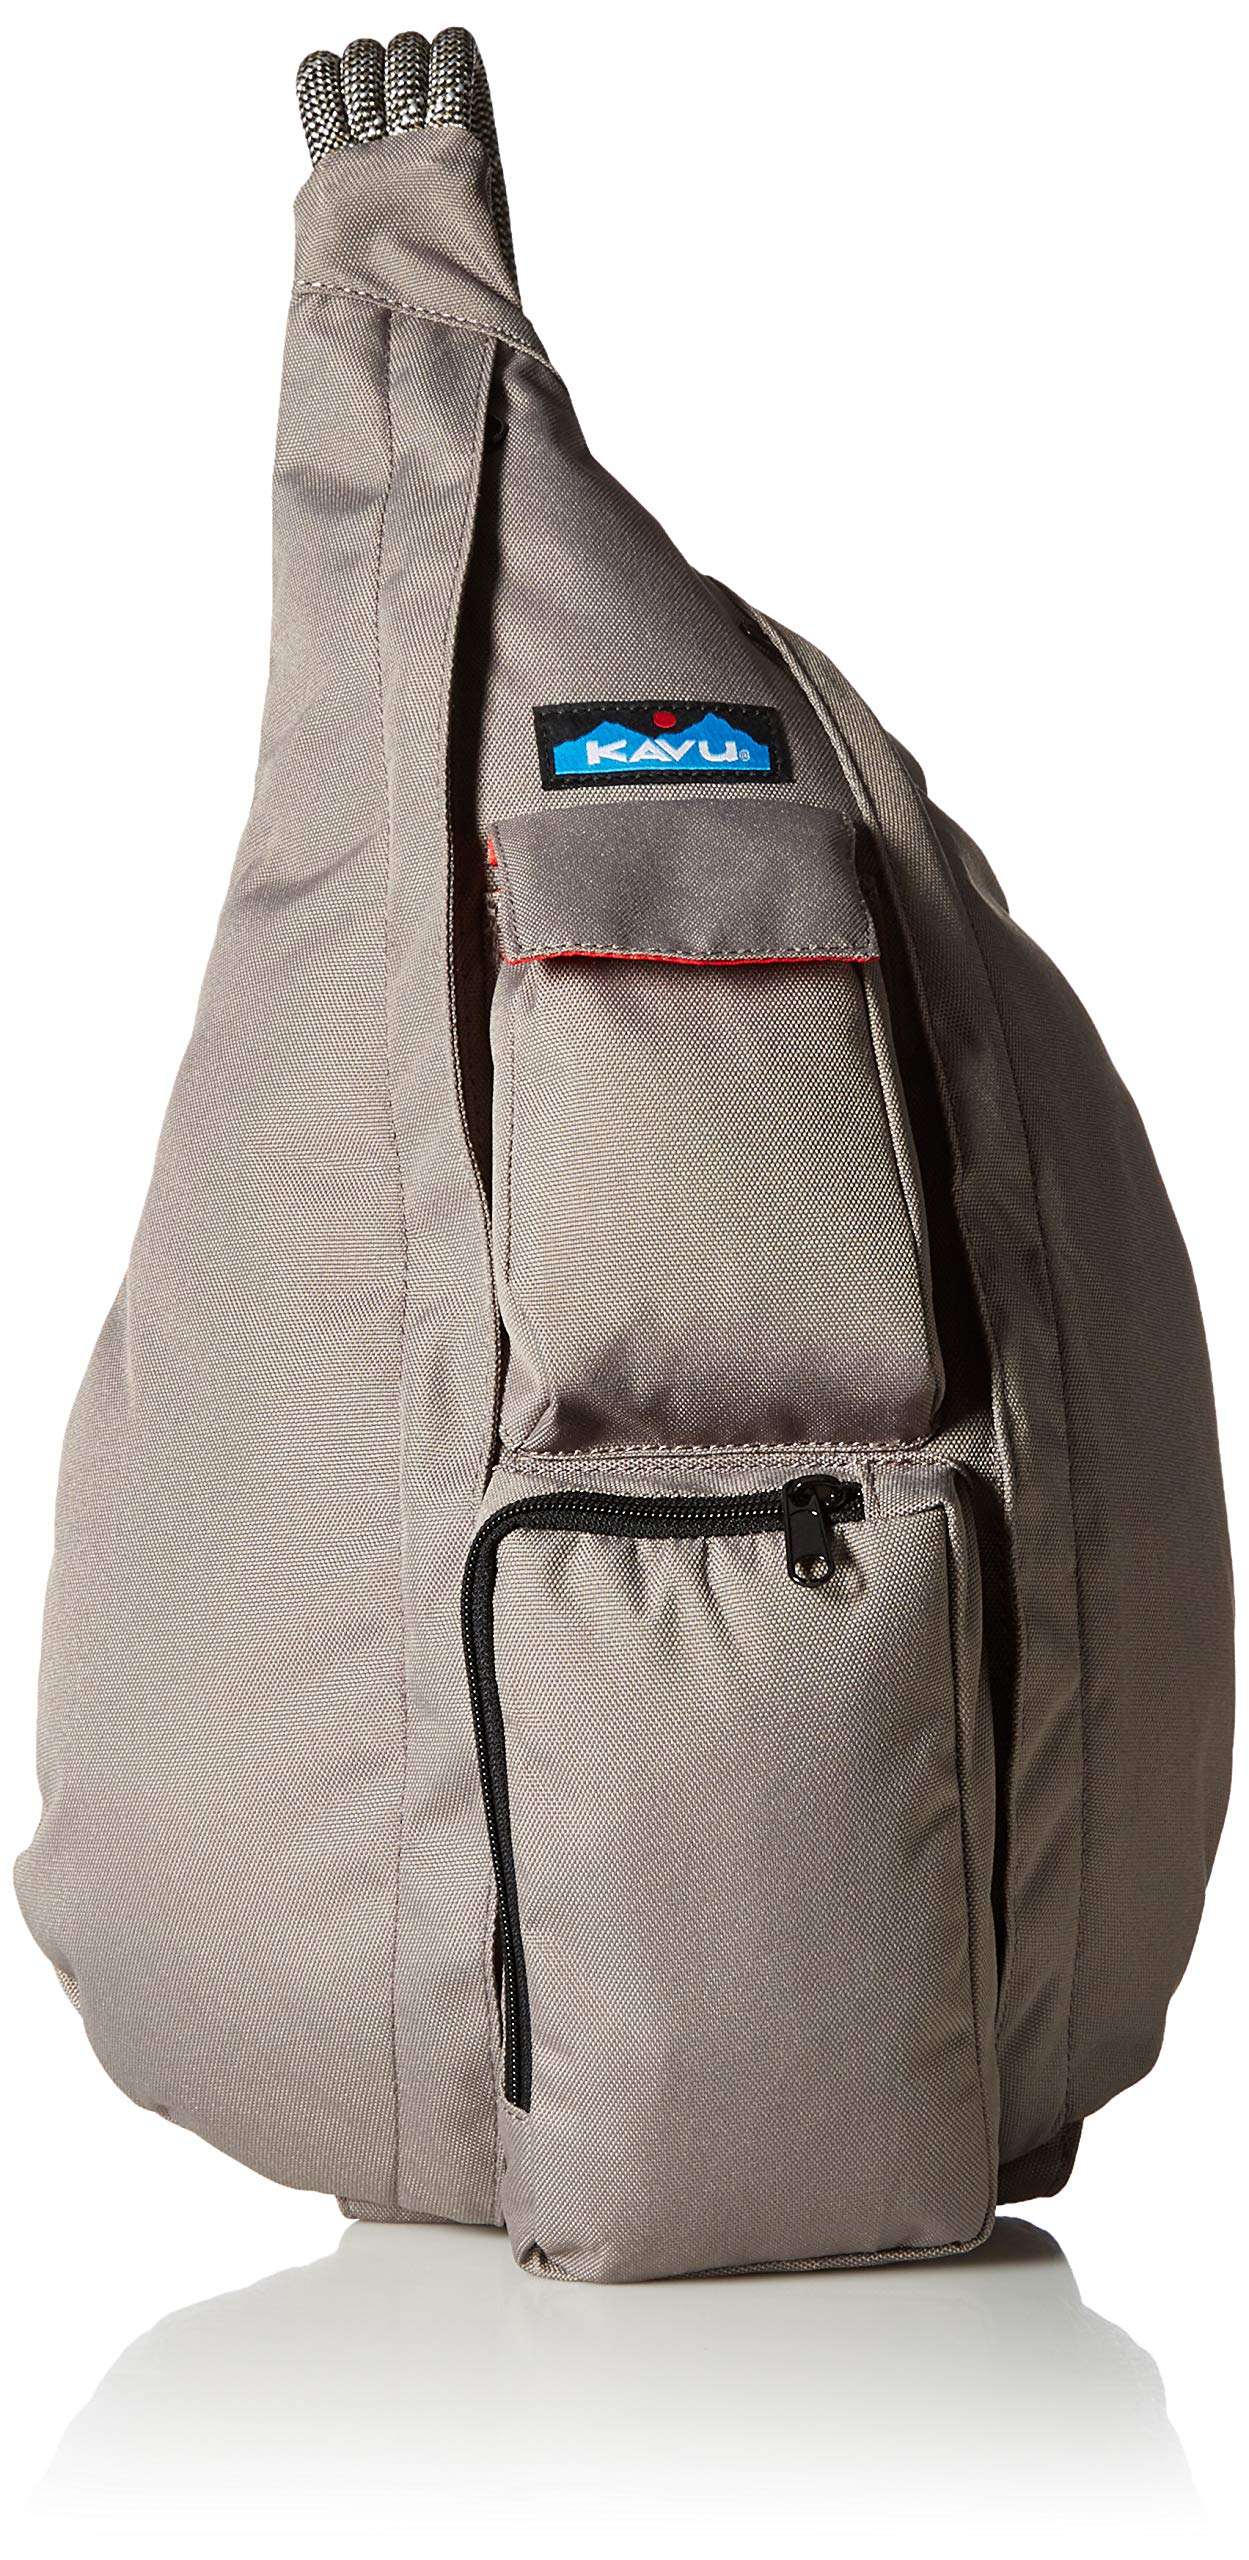 KAVU Rope Sling outdoor-backpacks, Coyote, One Size